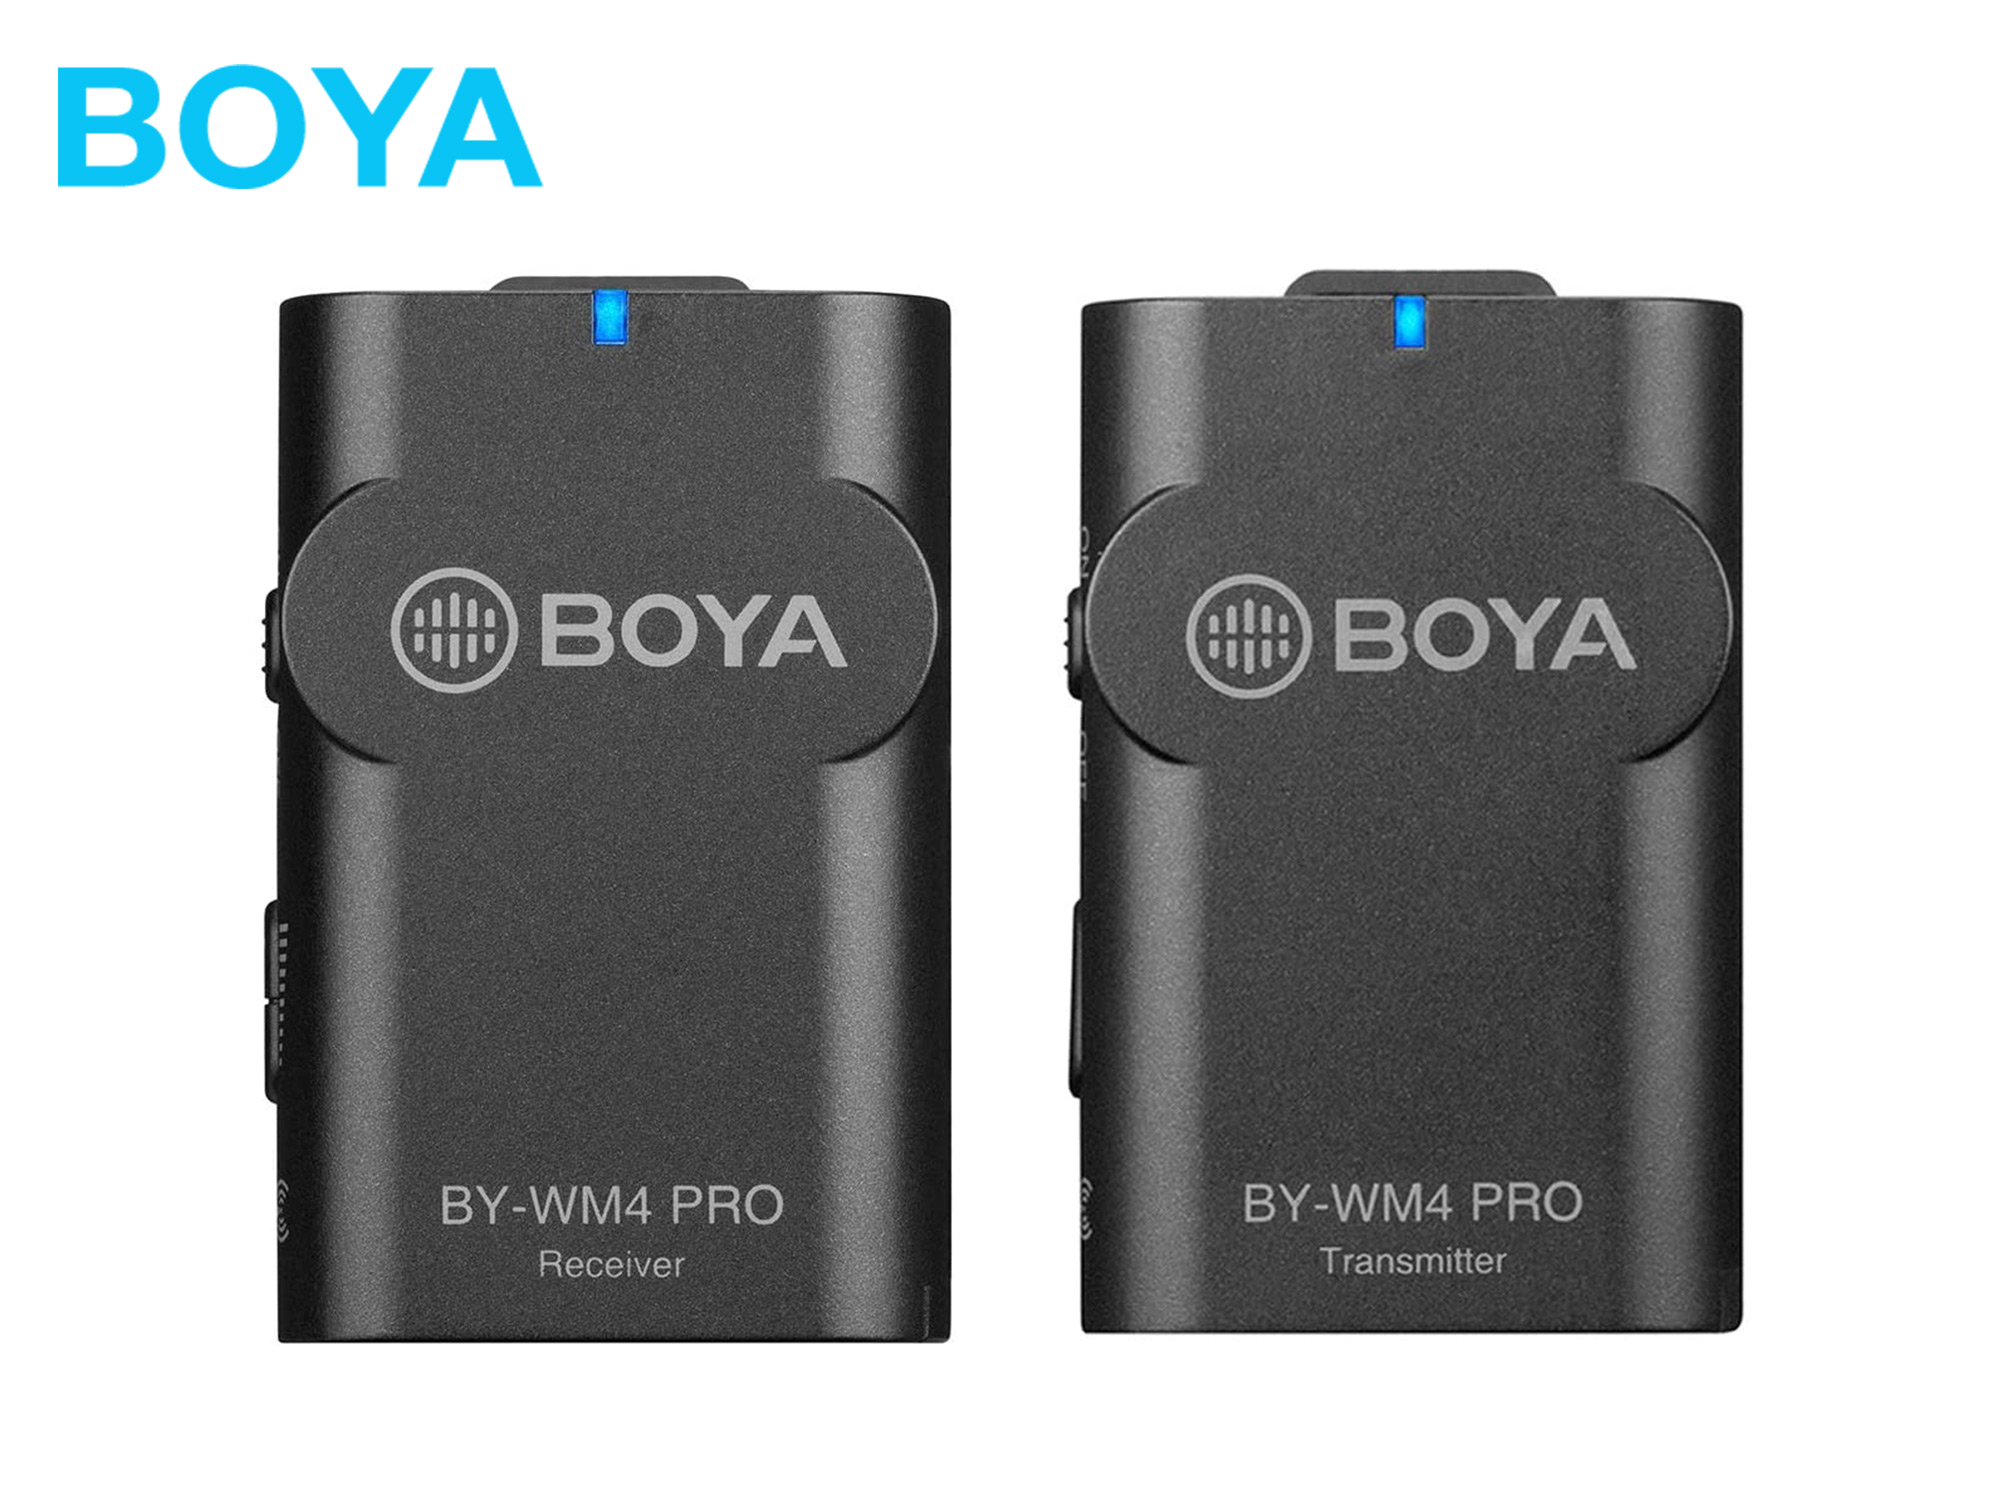 Boya BY-WM4 PRO Dual-Channel Digital Wireless Microphone System